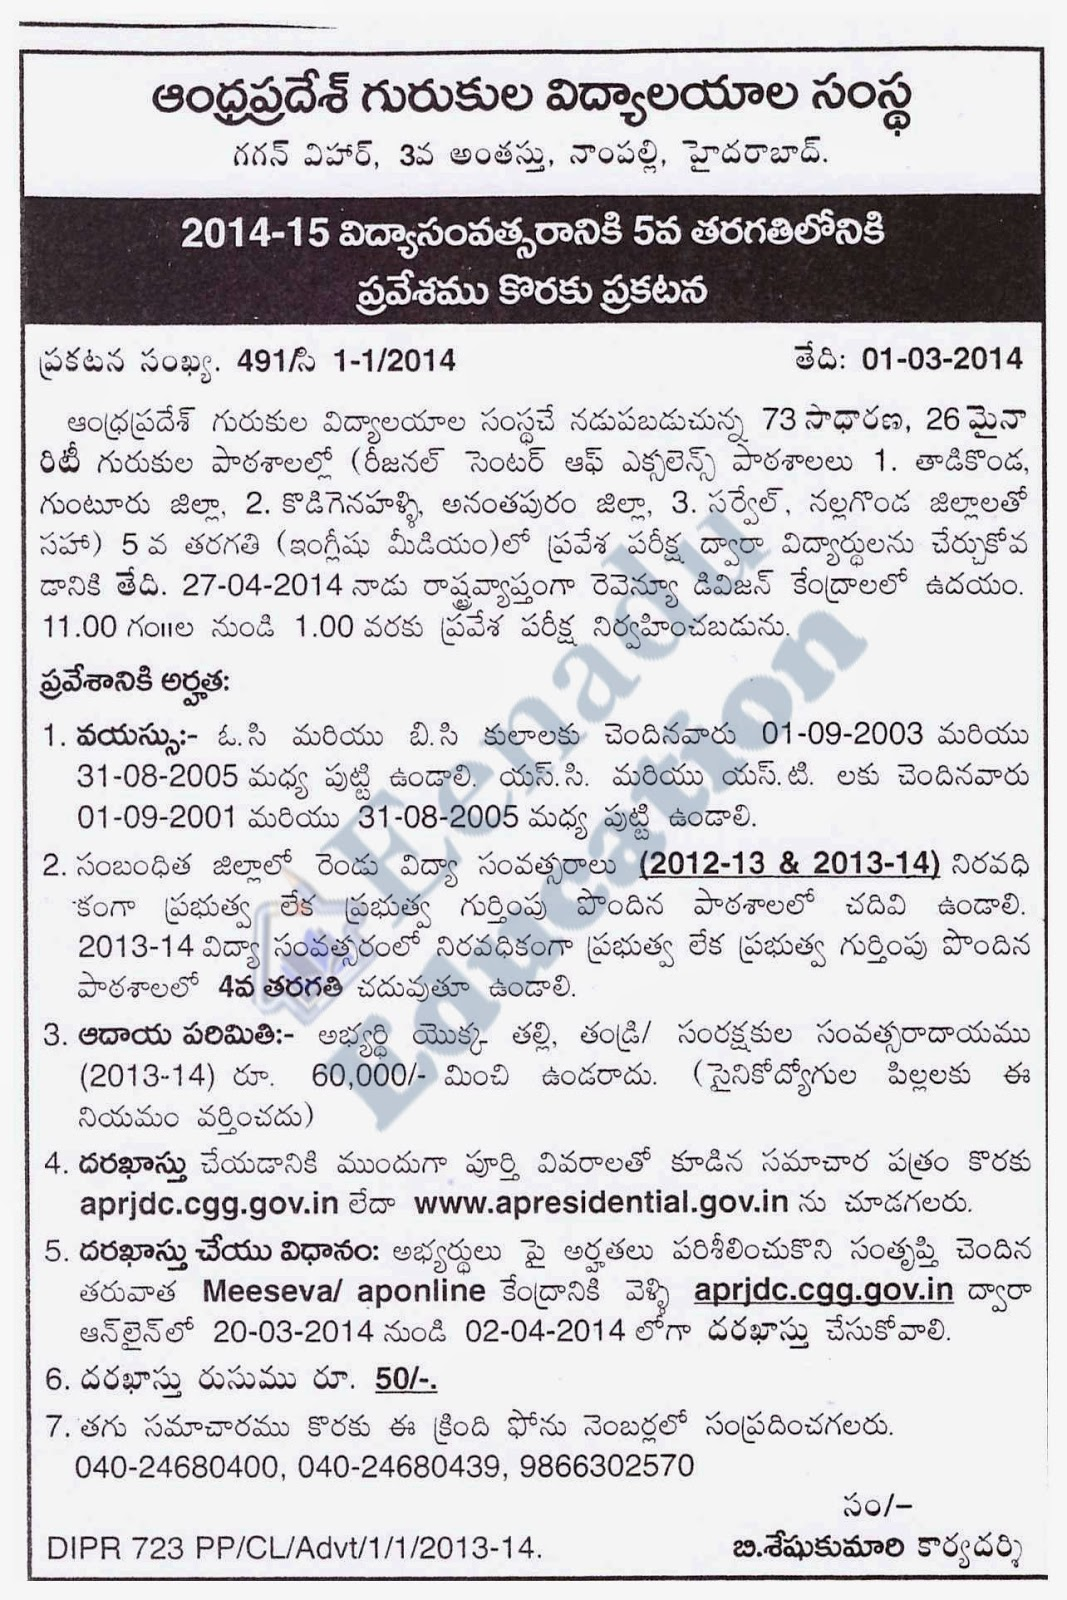 Admissions To AP Residential Schools(Gurukula Patashalala) In 5th Class 2014